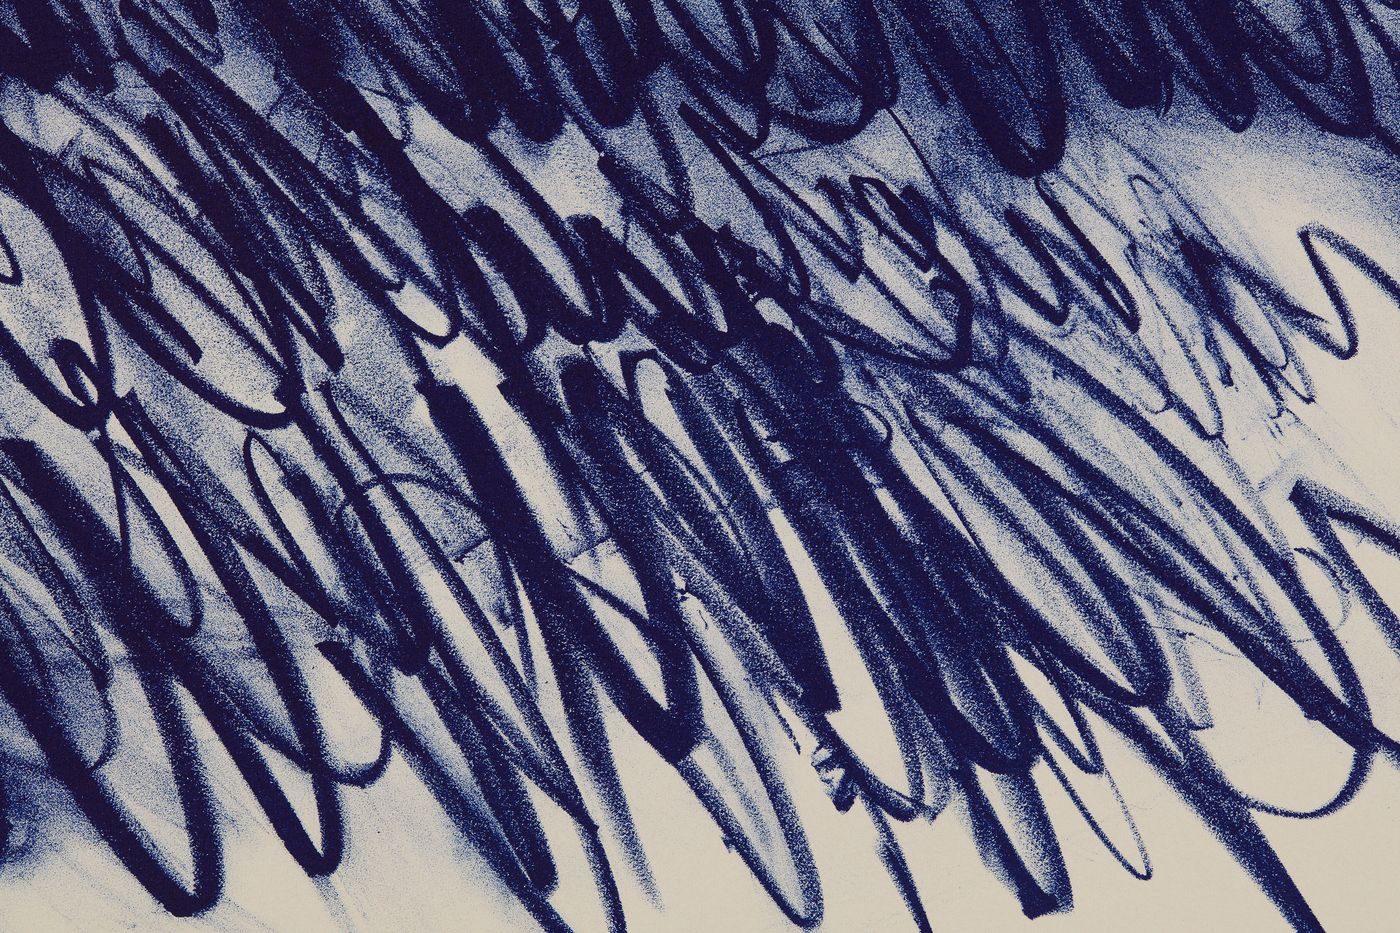 PHILLIPS : Cy Twombly's Journey to Lithography